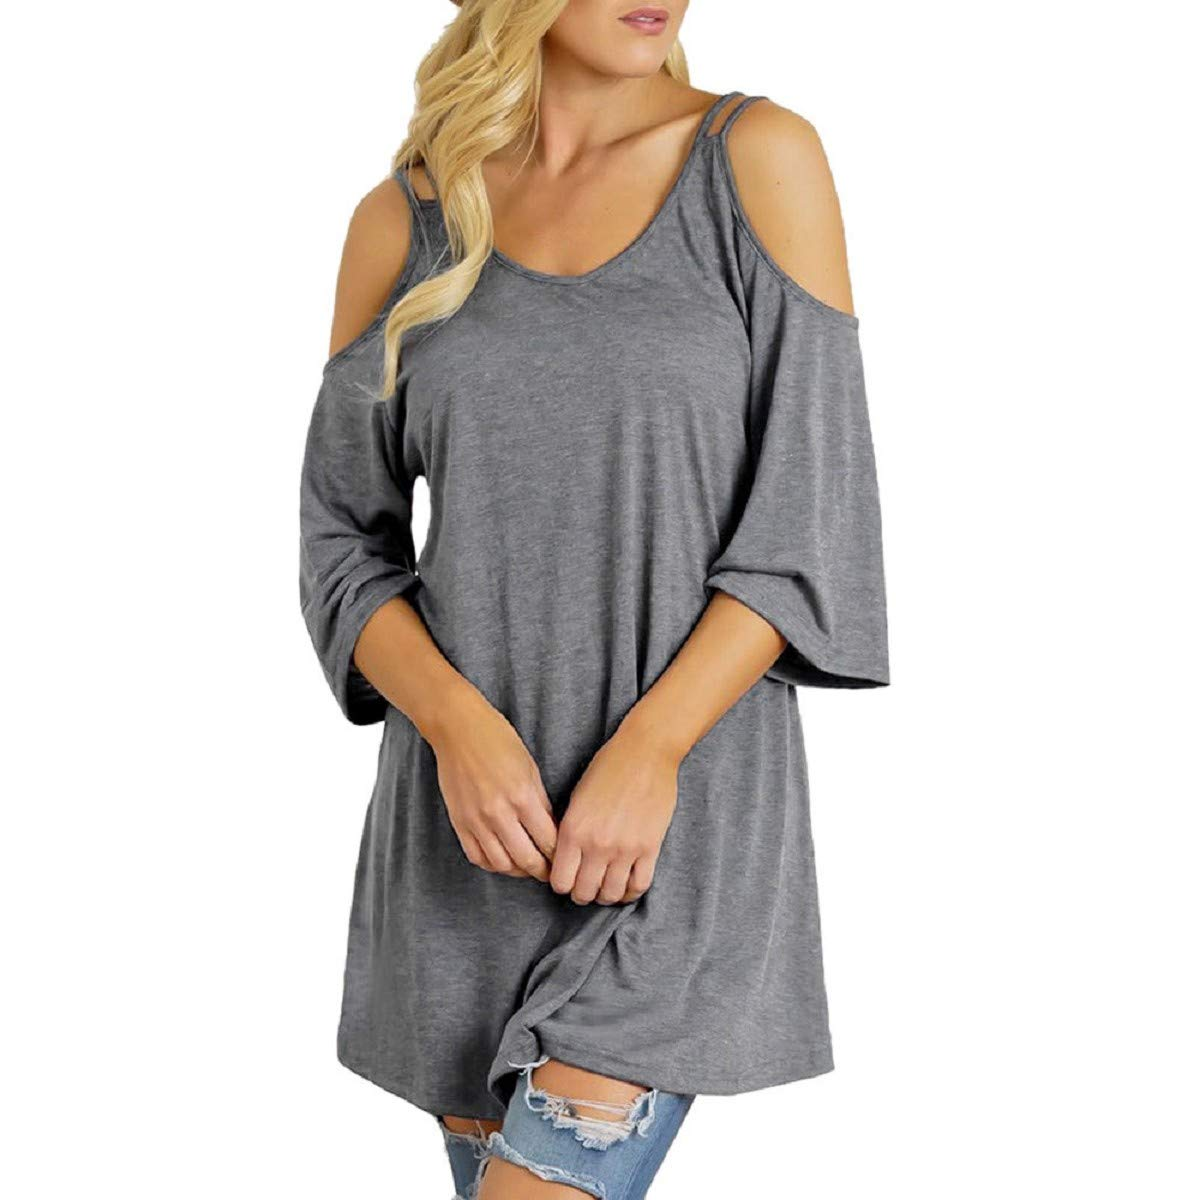 OTINICE Women Summer Short Sleeve Cold Shoulder Tunic Tops Plus Size Casual Loose T-Shirt Blouse Gray